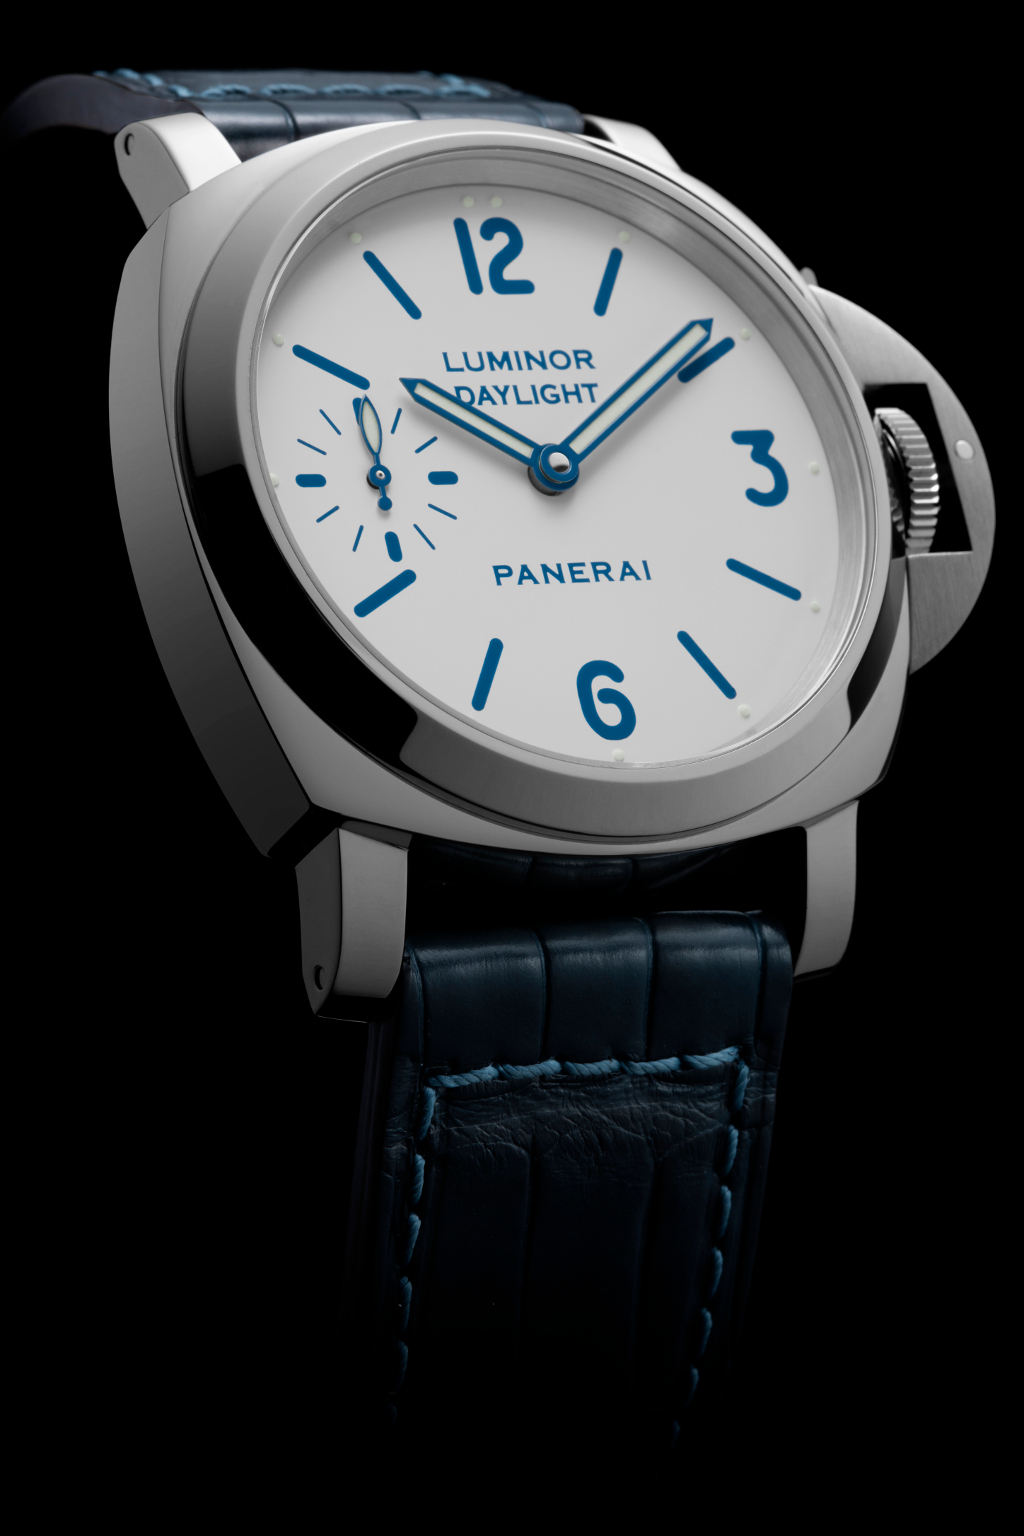 Panerai Luminor Daylight 8 Days PAM650 replica